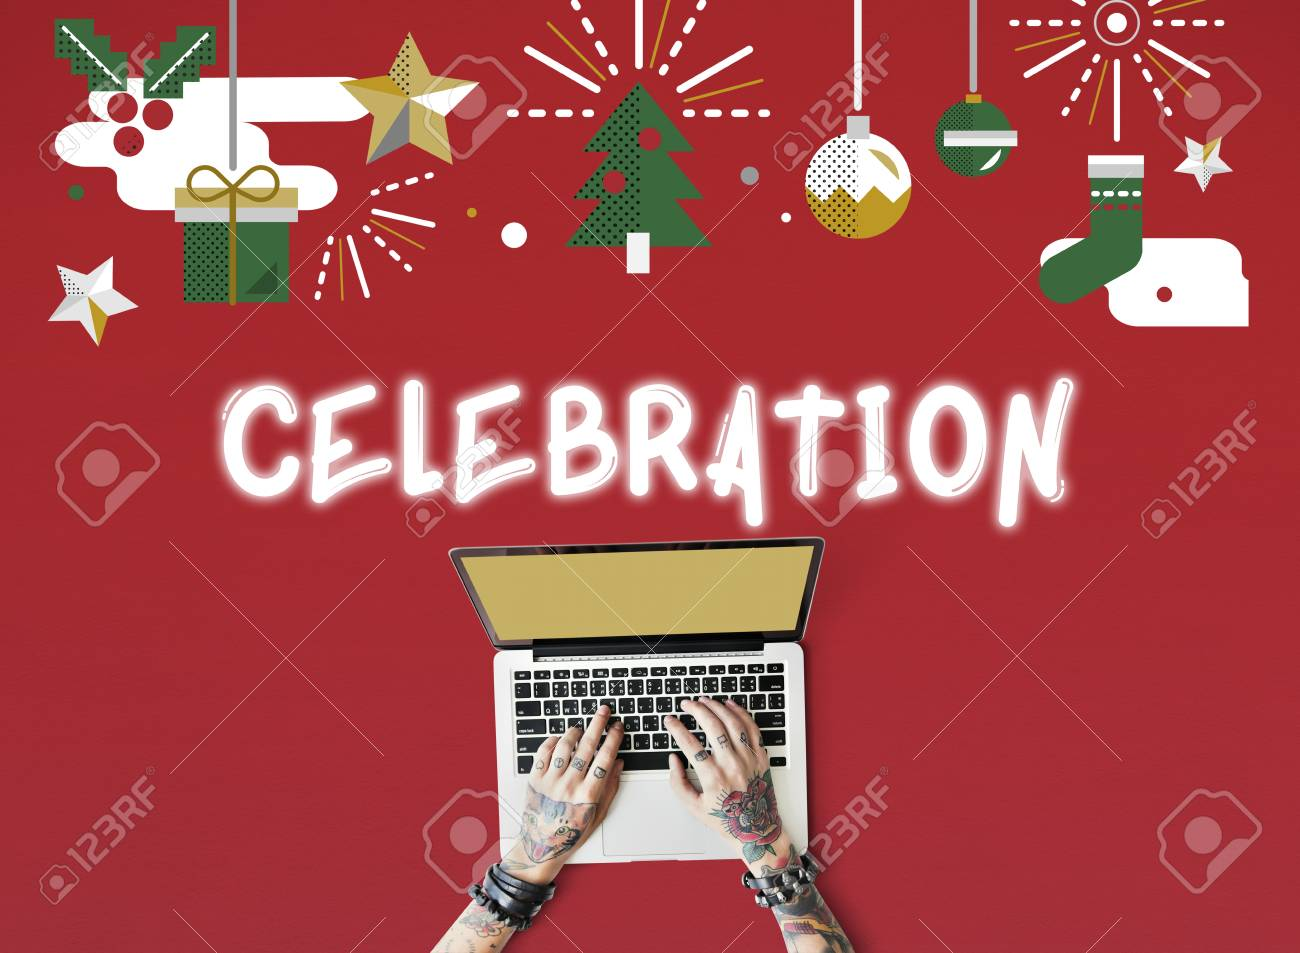 merry x'mas christmas celebration concept stock photo, picture and